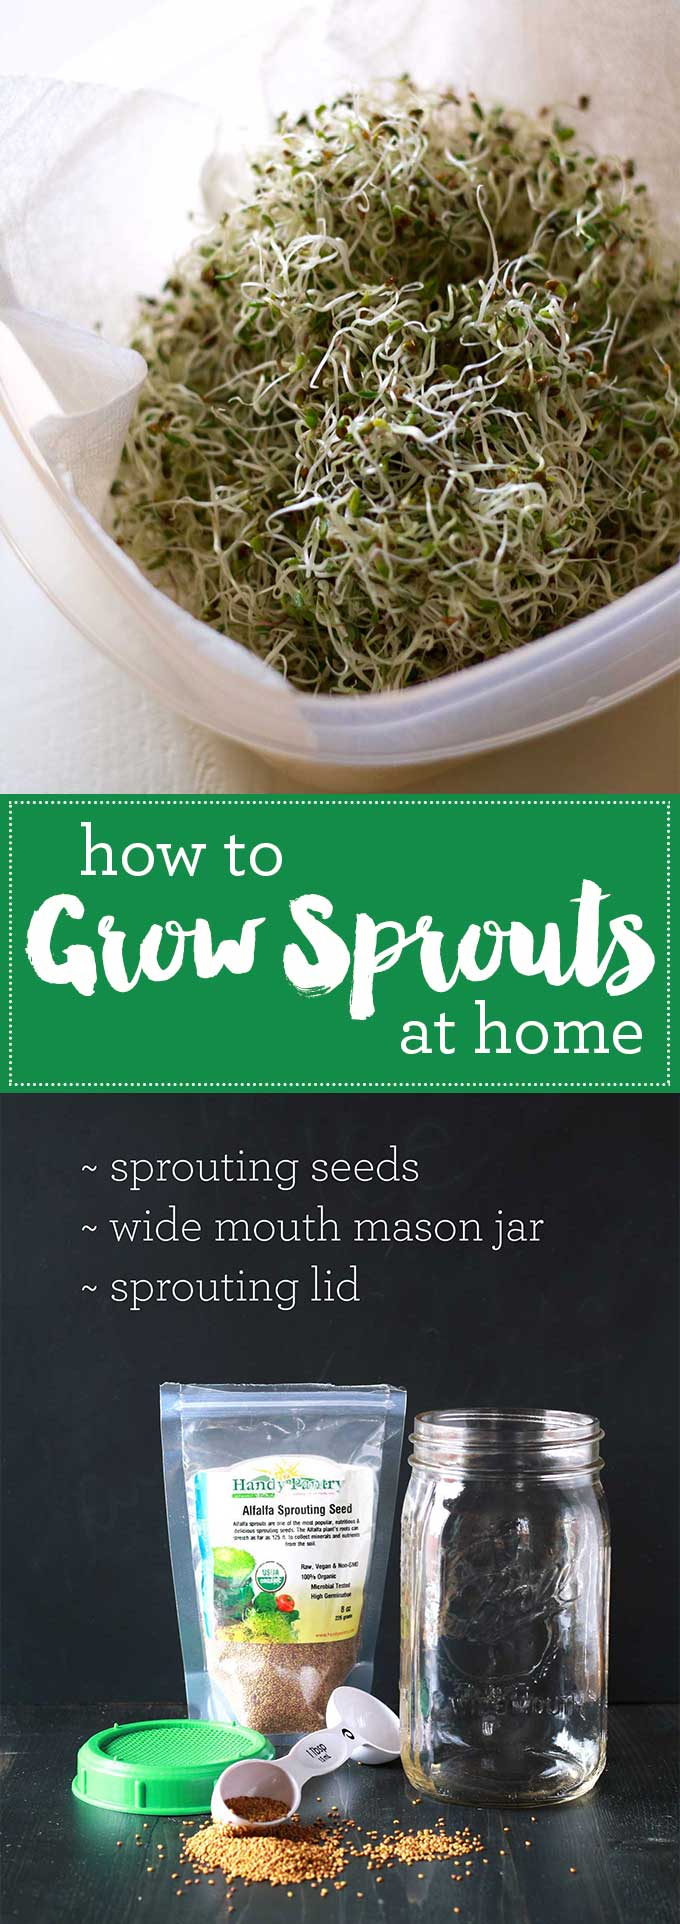 Growing sprouts at home is so easy and is huge money saver! You may never buy sprouts at the store again! | http://eatwithinyourmeans.com